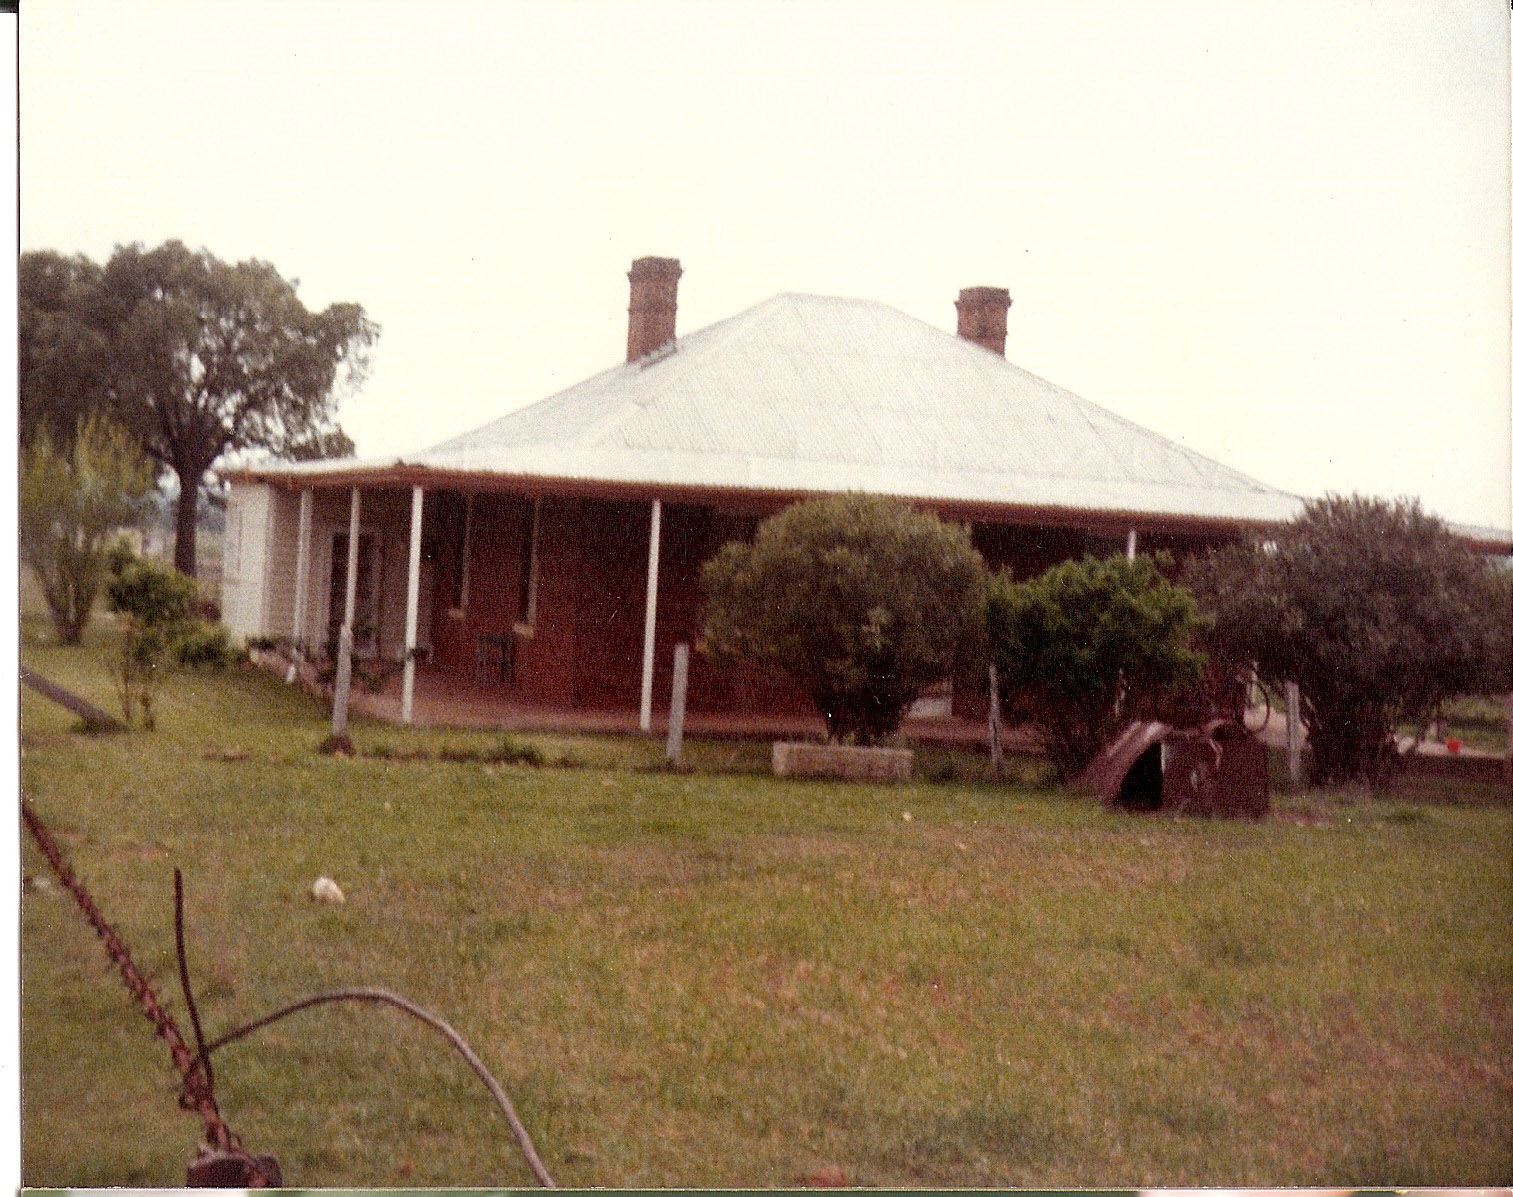 1985 Oct. Brislington Private hospital, Gulgong